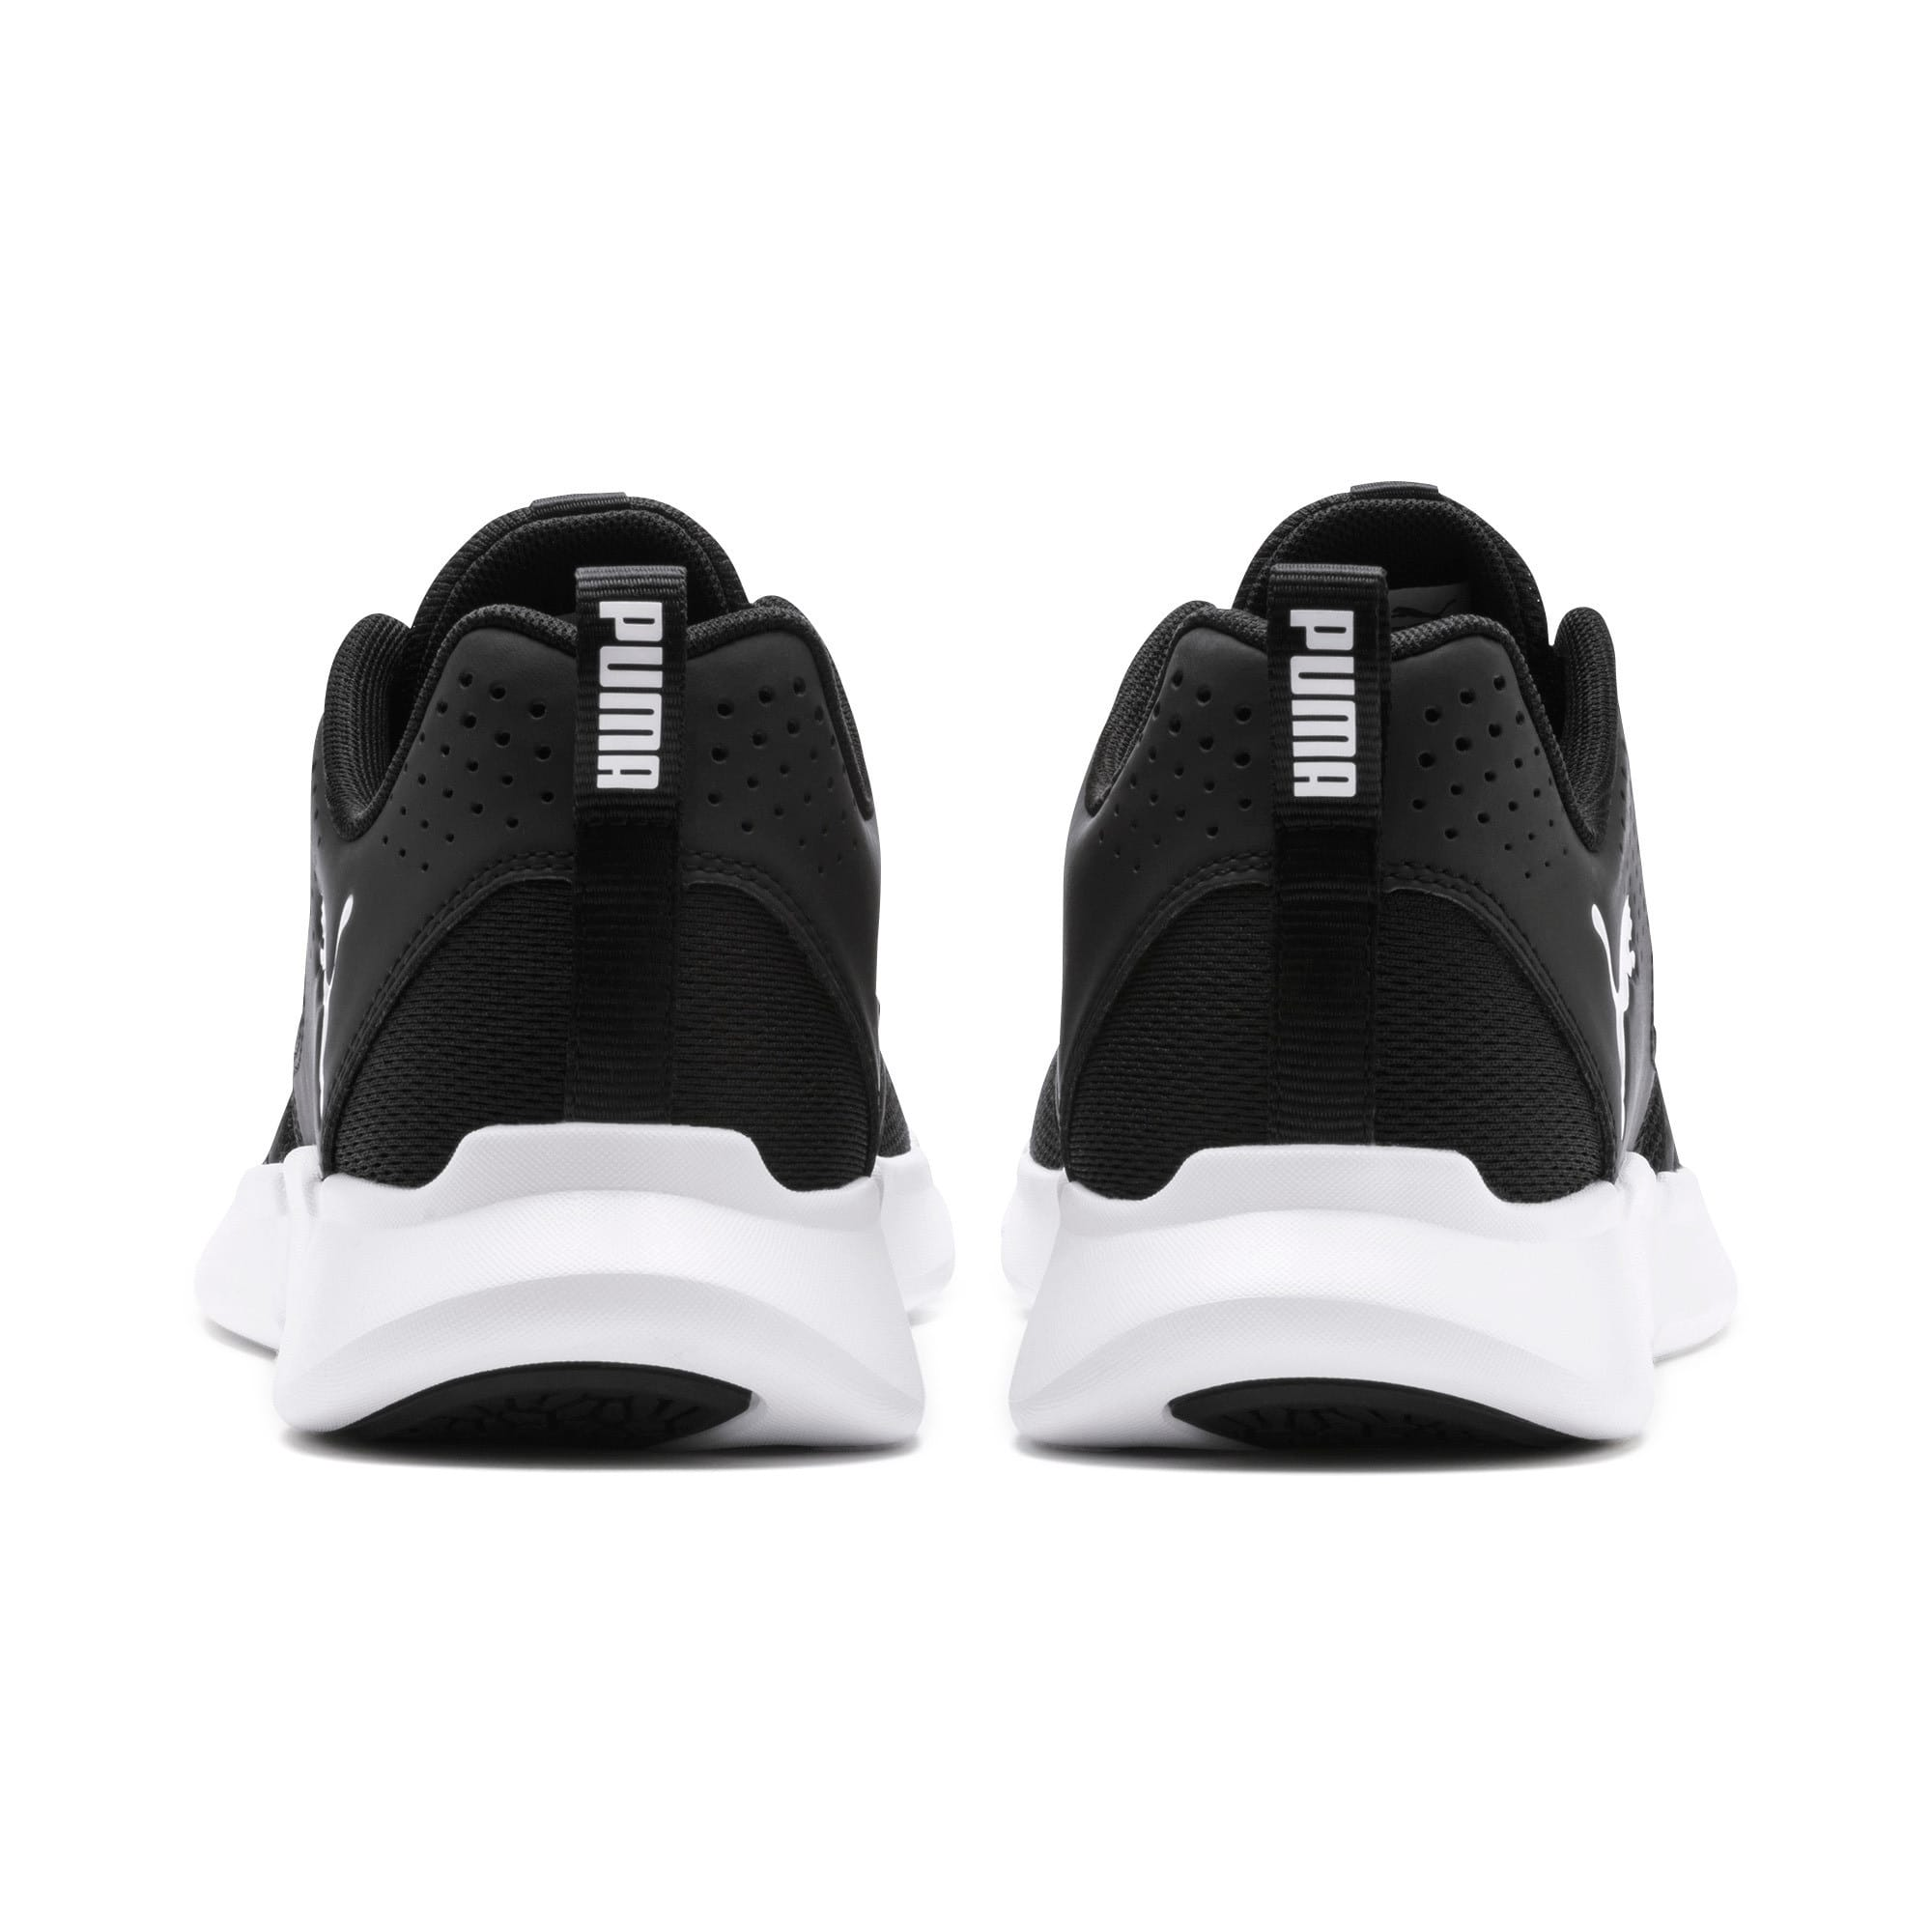 Thumbnail 5 of INTERFLEX Modern Running Shoes, Puma Black-Puma White, medium-IND